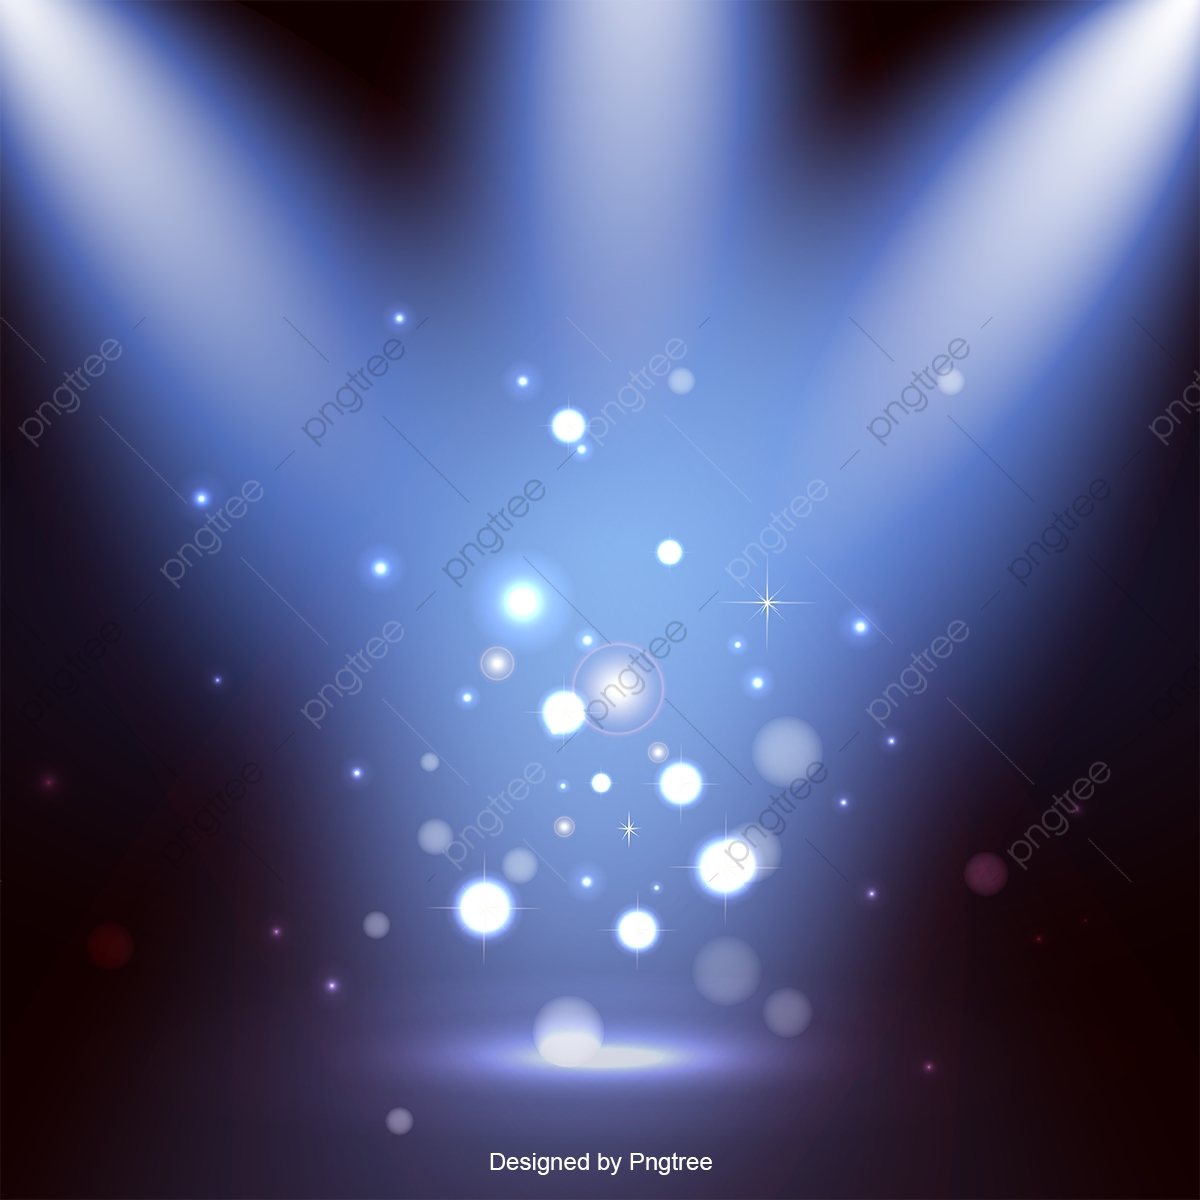 Stage Lighting Effects Vector, Stage, Lighting Effects, Light PNG.